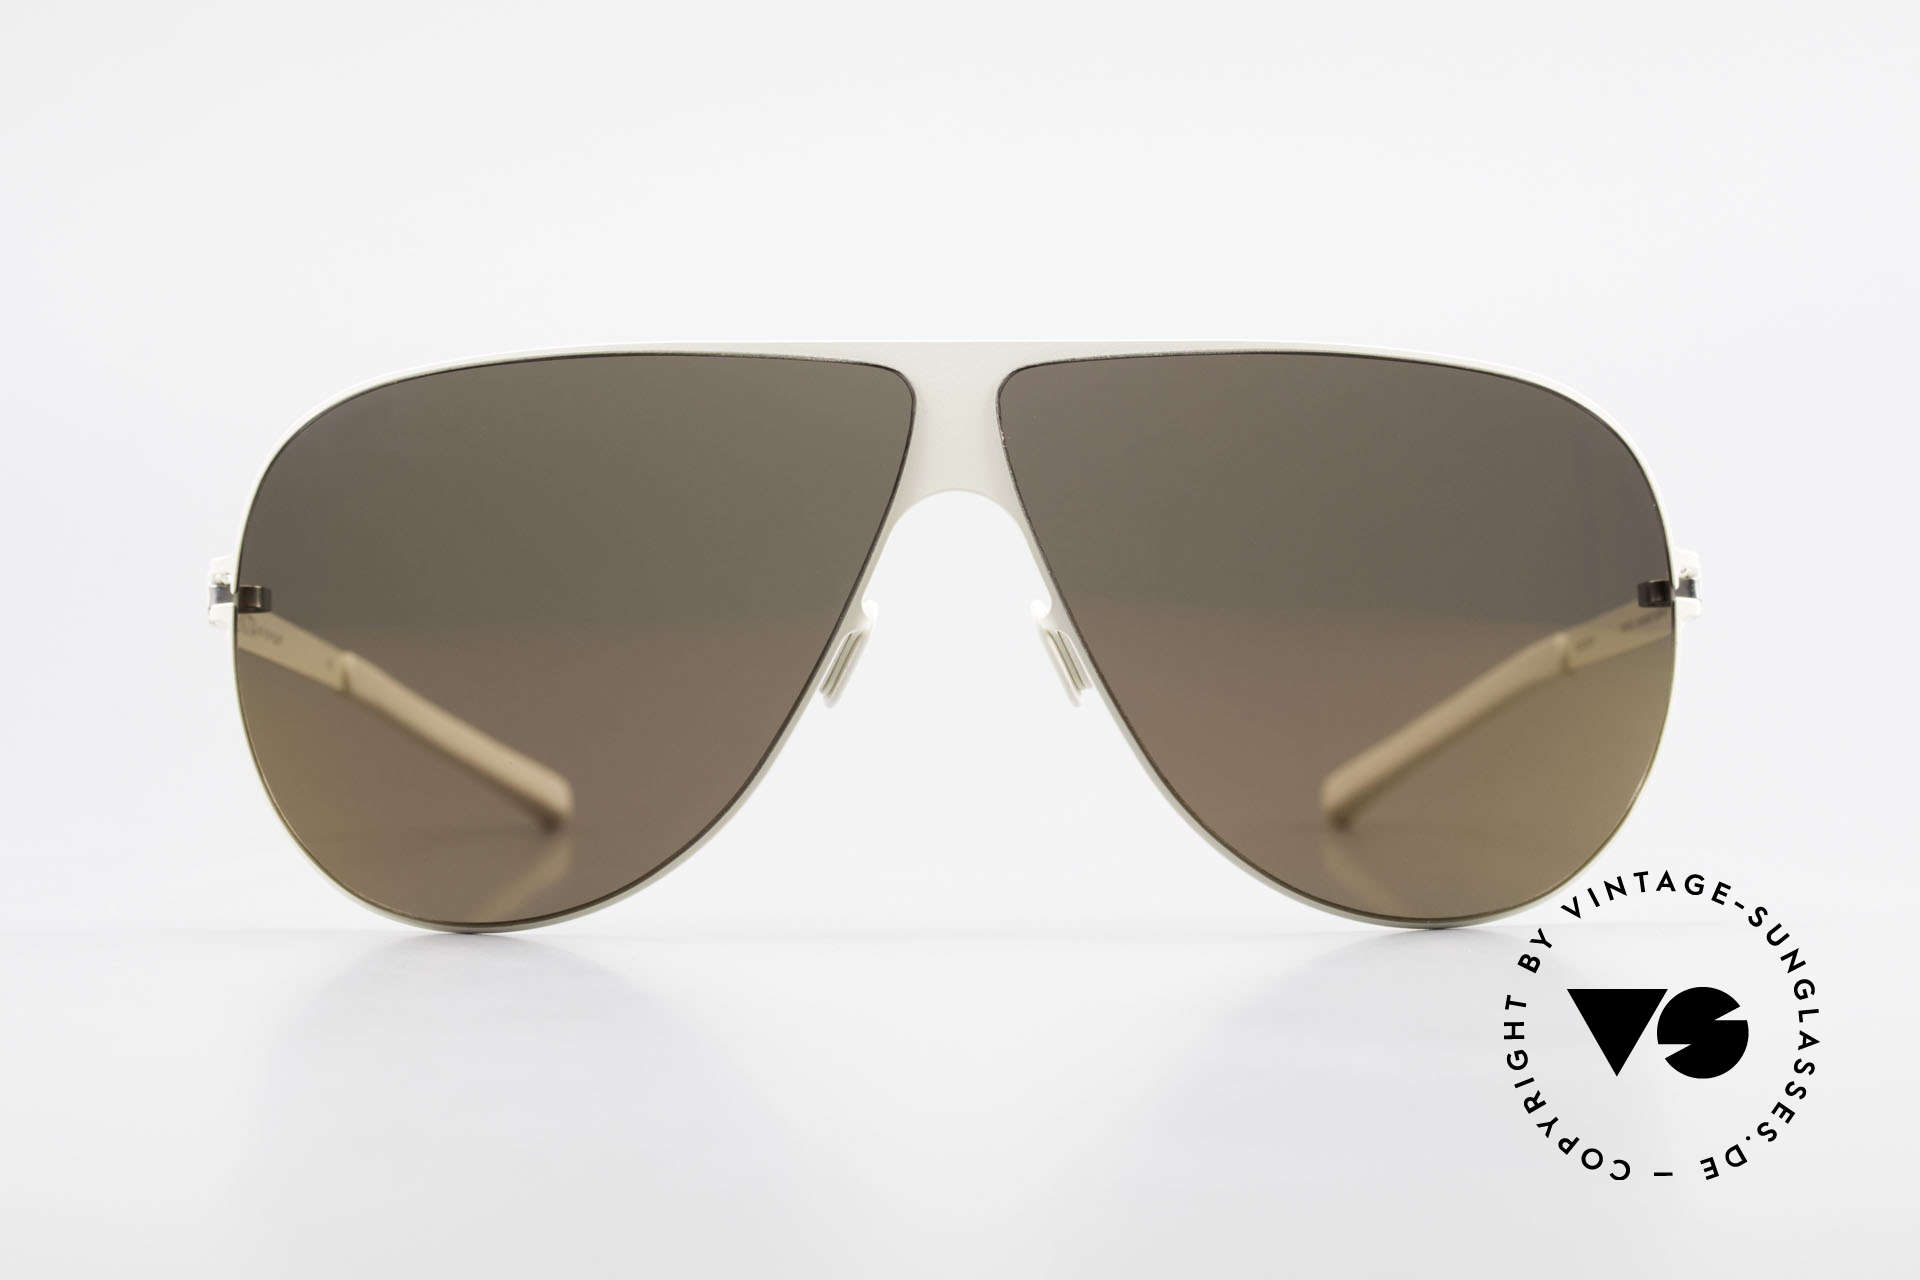 Mykita Elliot Tom Cruise Mykita Sunglasses, MYKITA: the youngest brand in our vintage collection, Made for Men